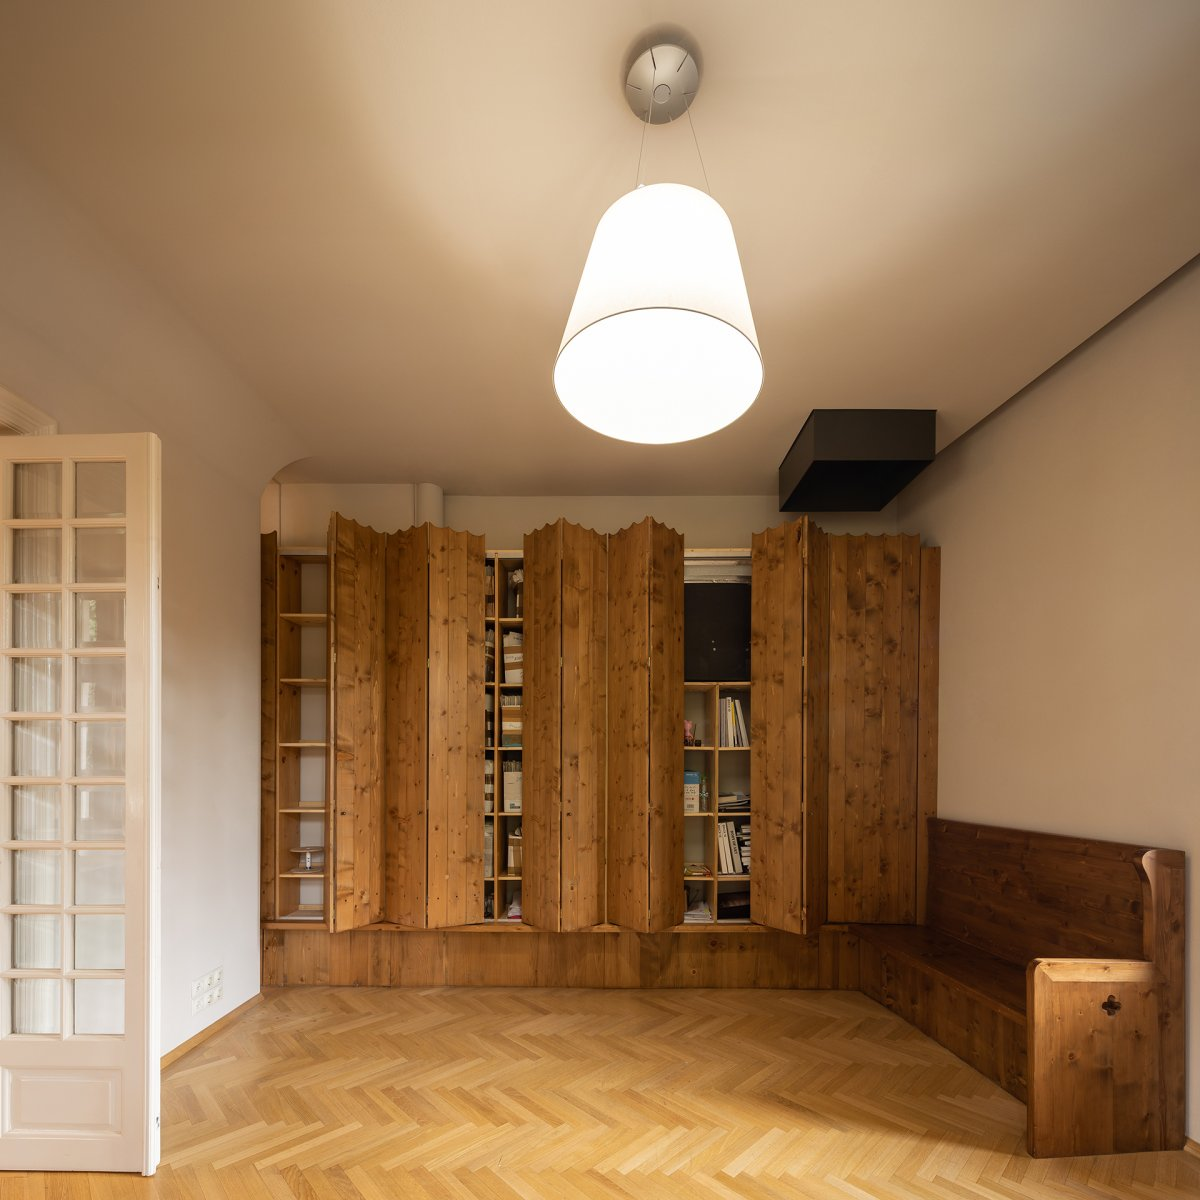 Restoration, refurbishment of the Headquarters of the order of Architects of Romania - Bucharest Branch